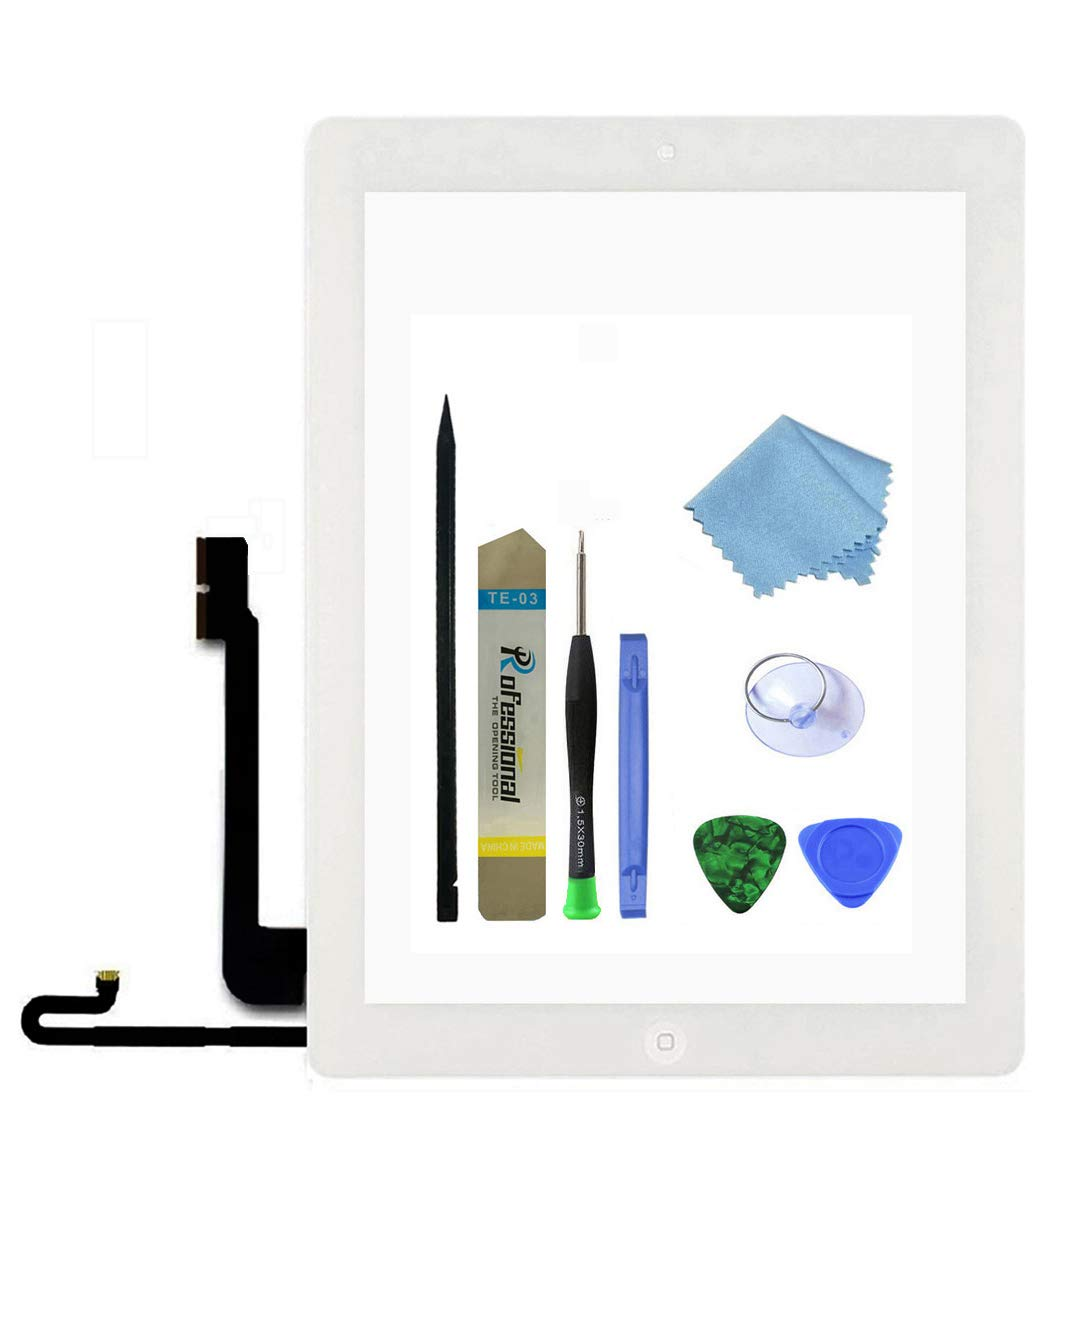 Zentop Touch Screen Digitizer replacement Assembly for White iPad 4 Model A1458, A1459, A1460 whith Home Button, Camera Holder ,Preinstalled Adhesive,Frame Bezel, tool Kit.